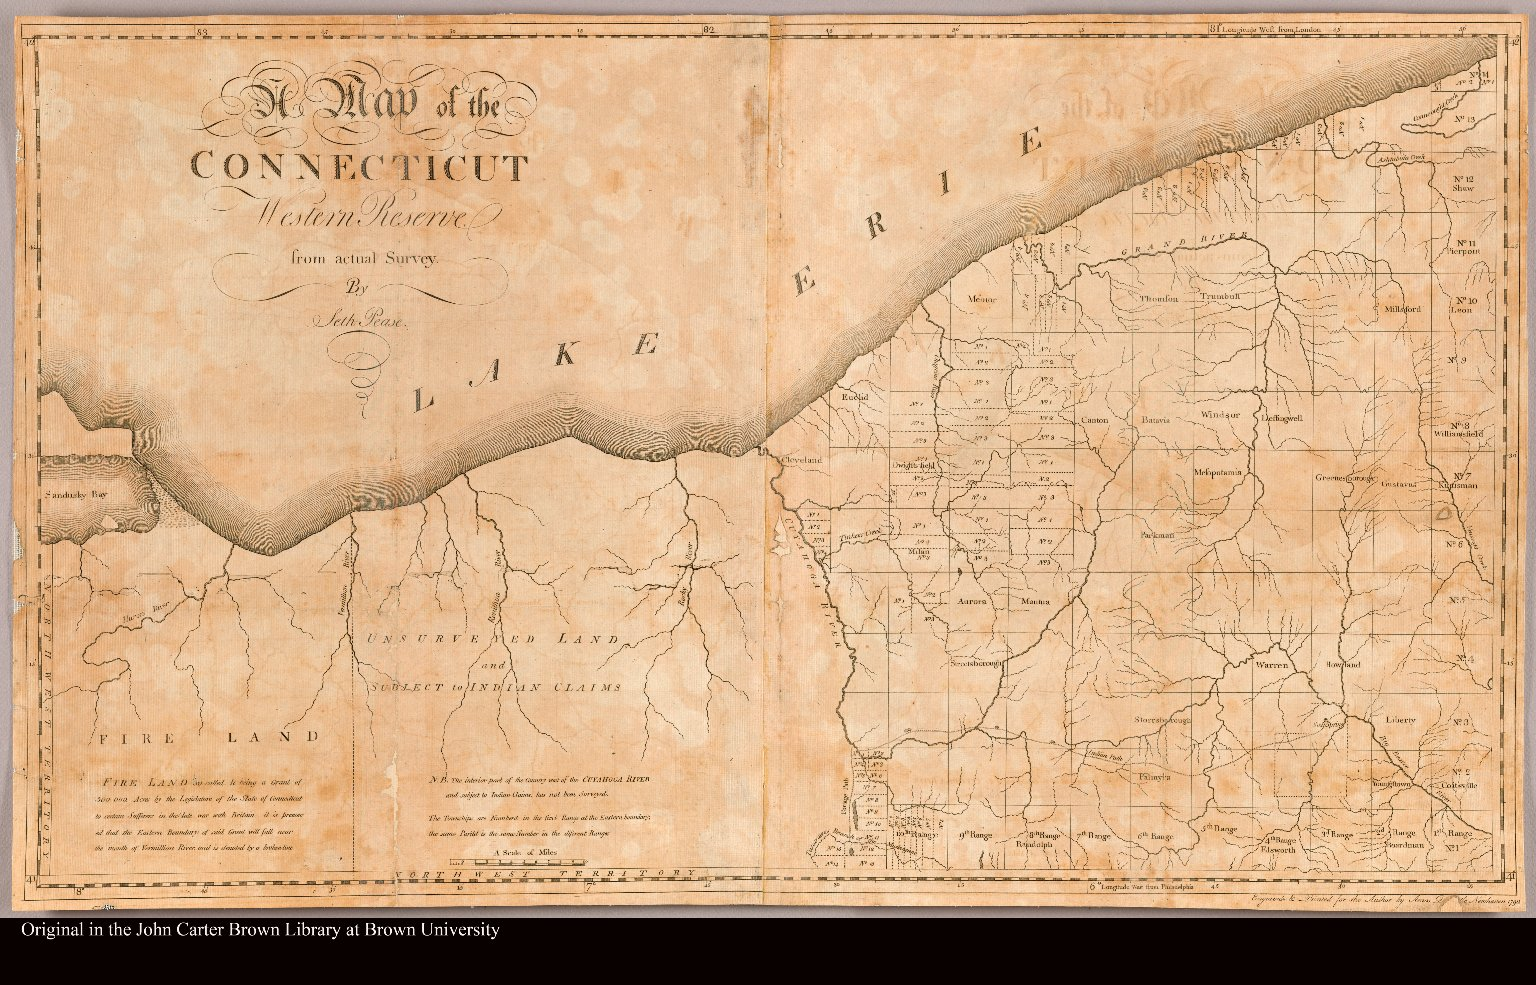 A map of the Connecticut Western Reserve from actual survey by Seth Pease